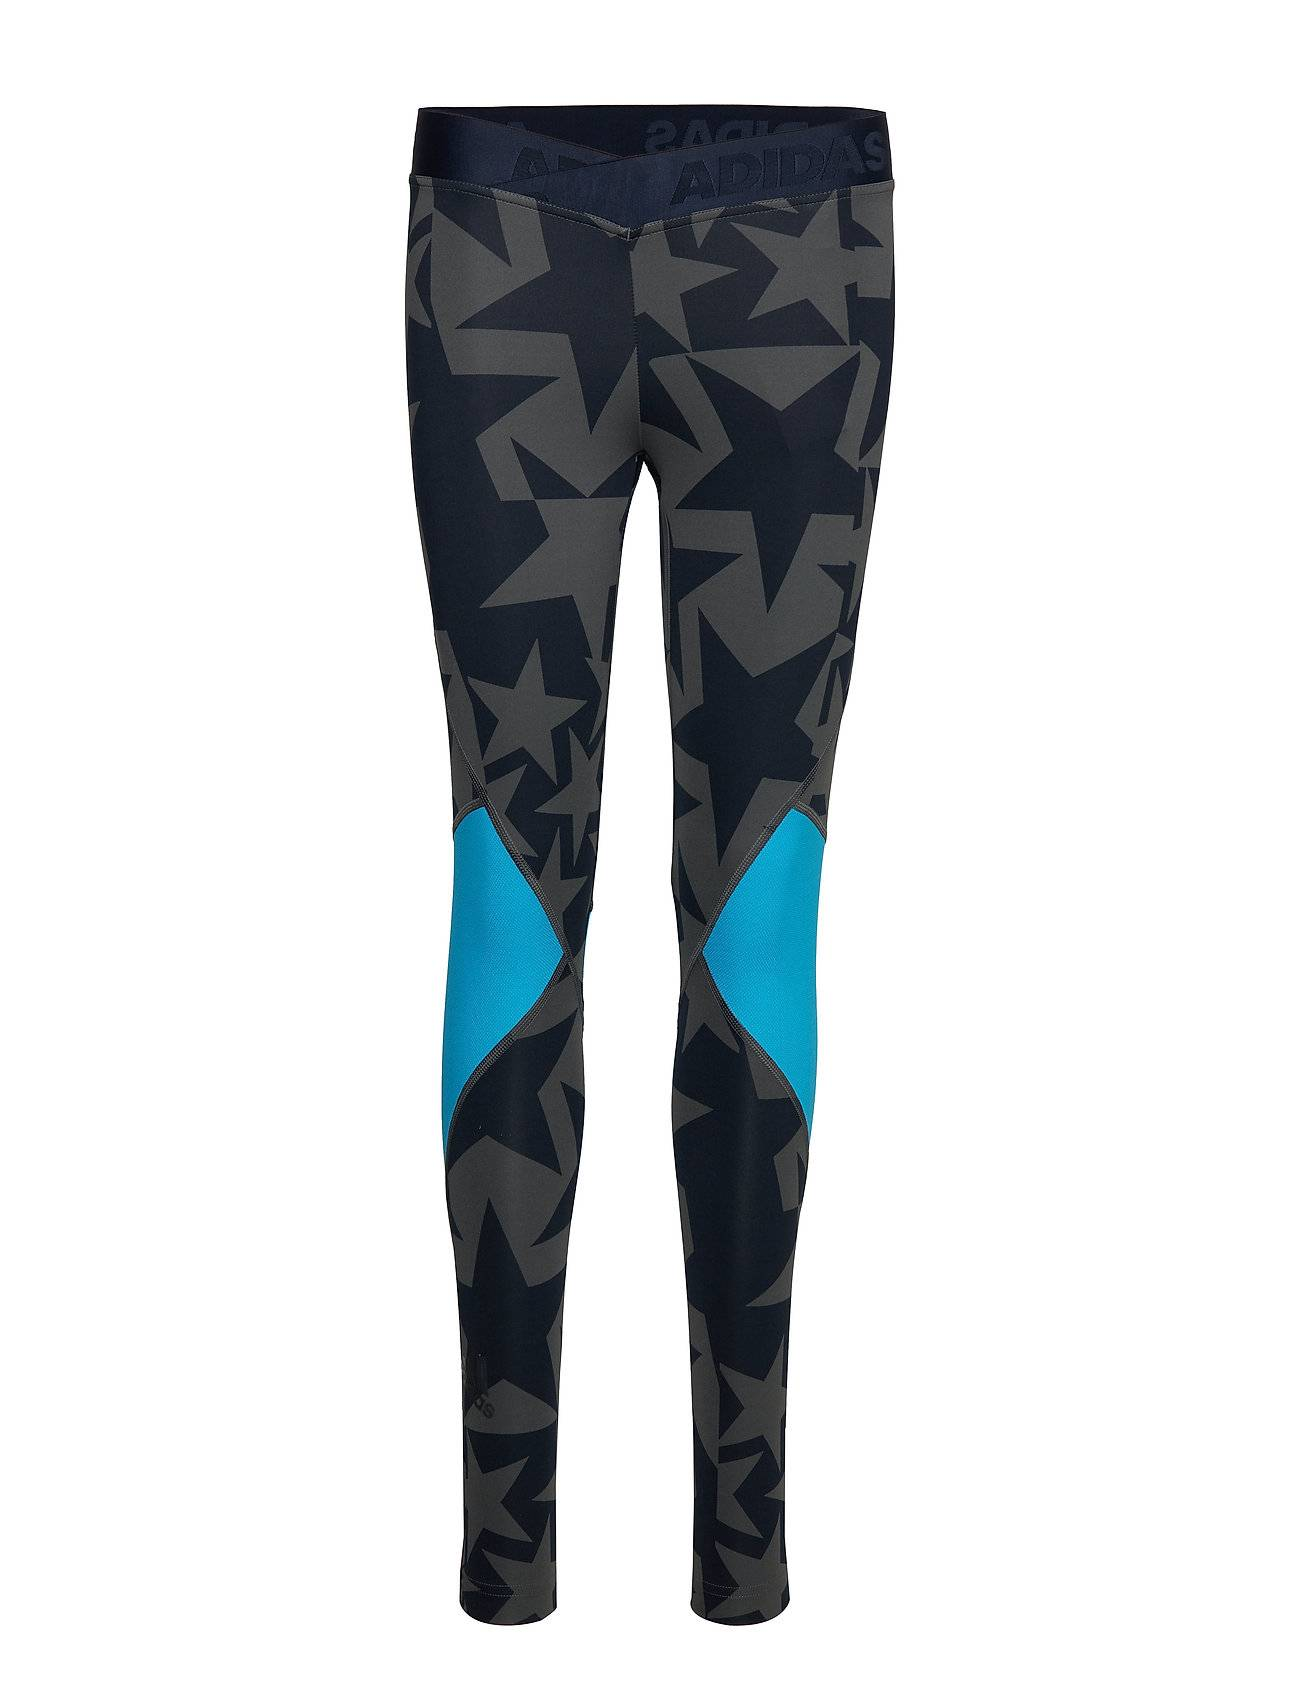 Image of adidas Performance Ask Spt L Itera Running/training Tights Musta Adidas Performance